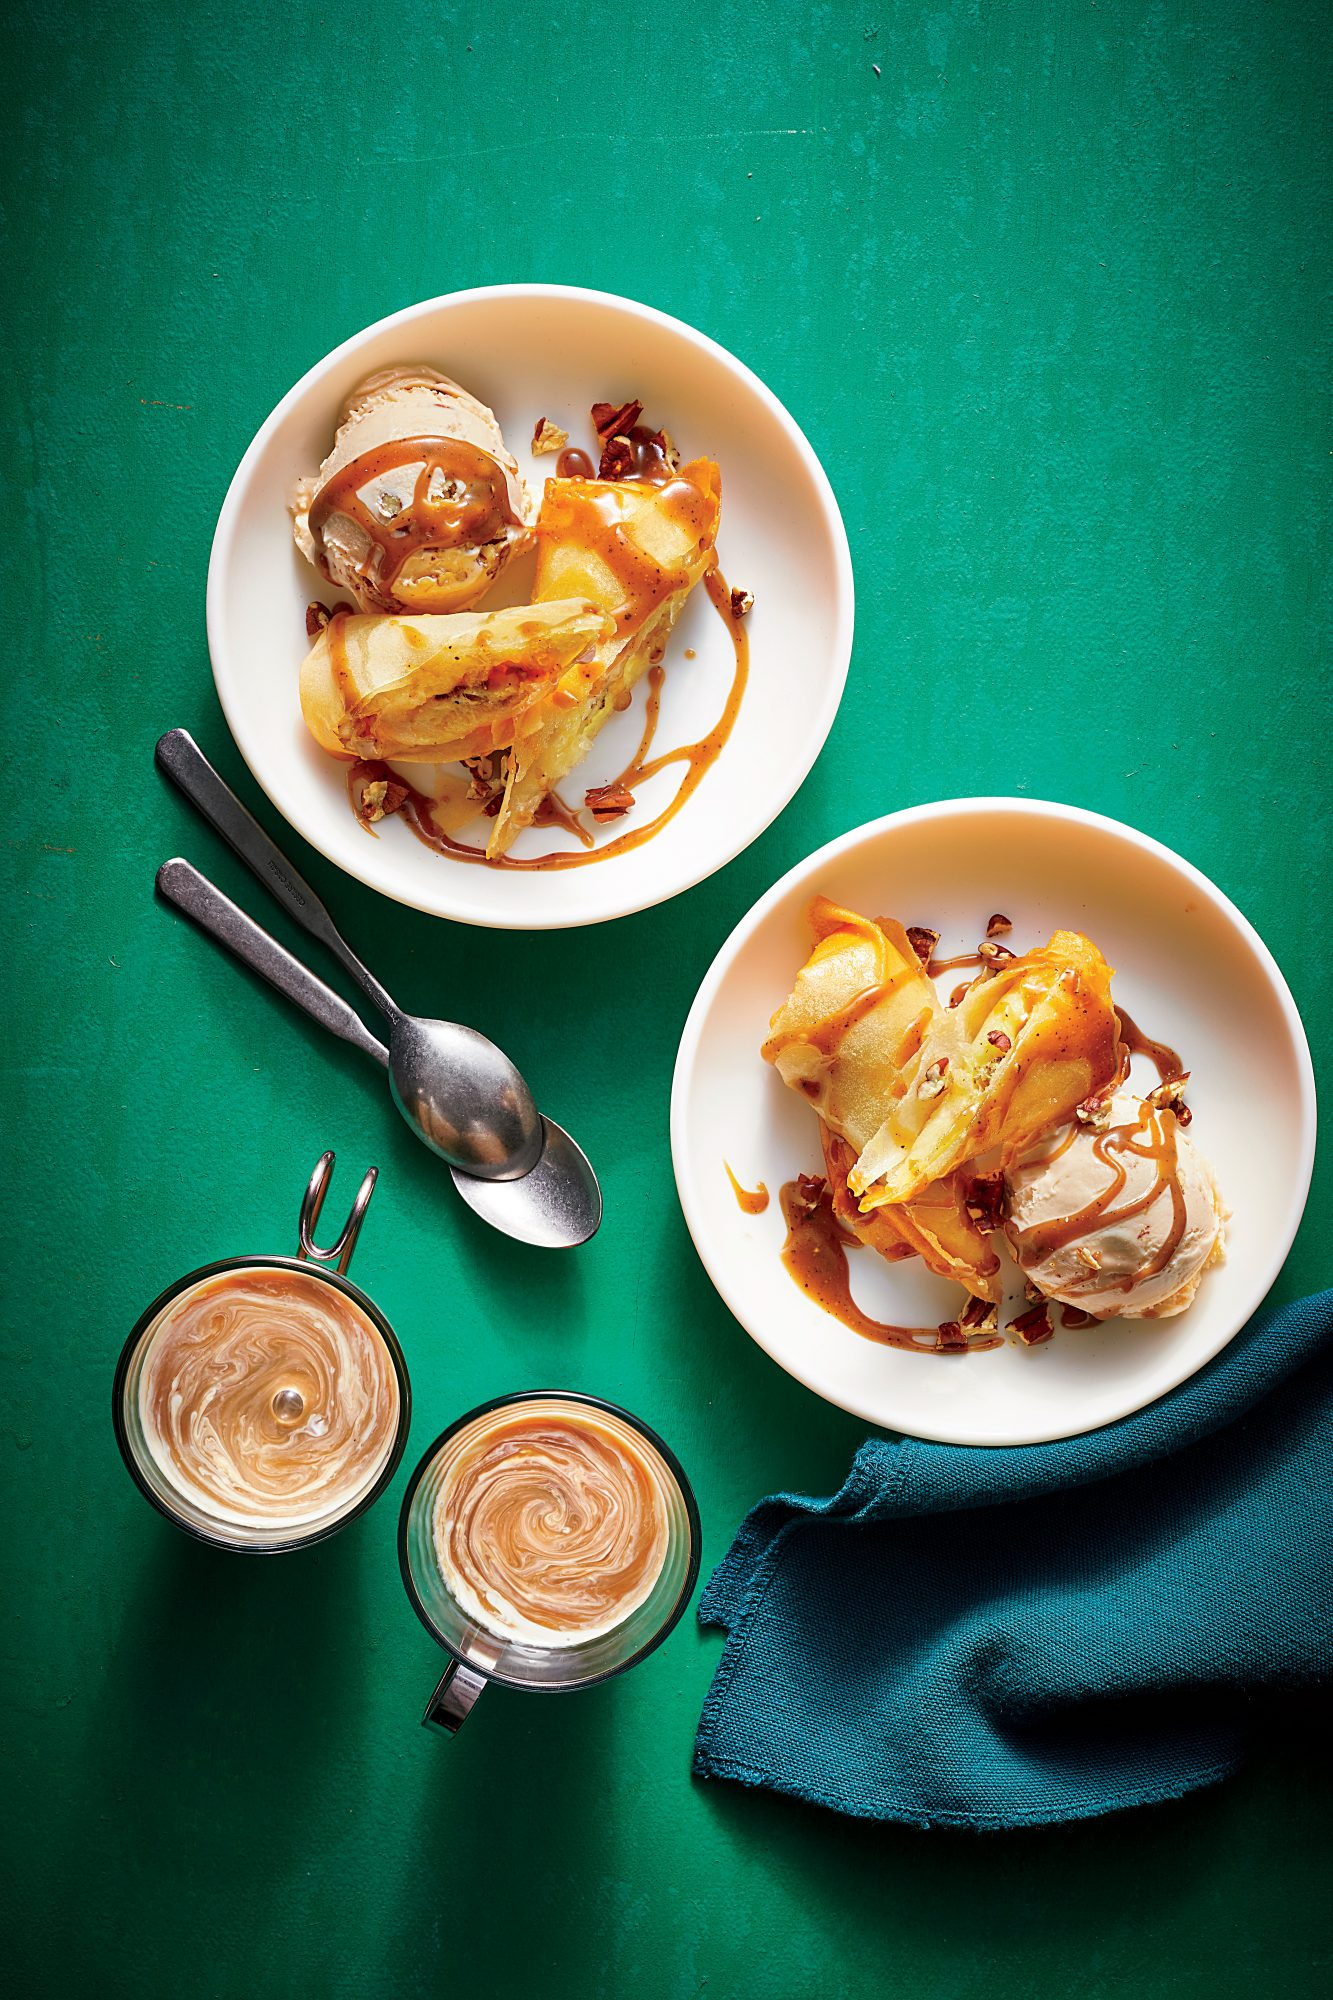 Fried Bananas Foster